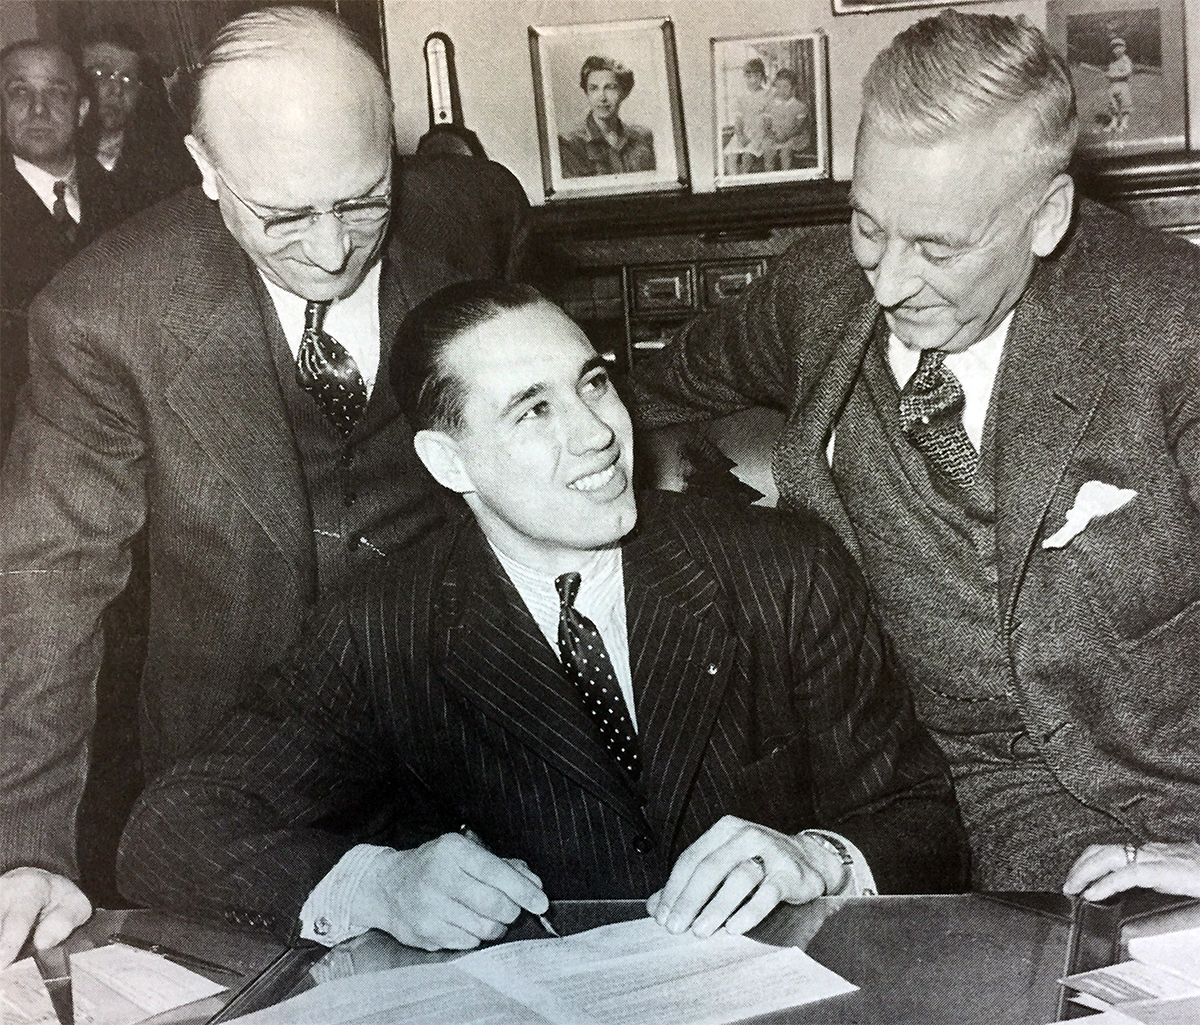 Cleveland Indians star Bob Feller, center, signs his 1941 contract as  general manager Cy Slapnicka, left, and owner Alva Bradley look on.